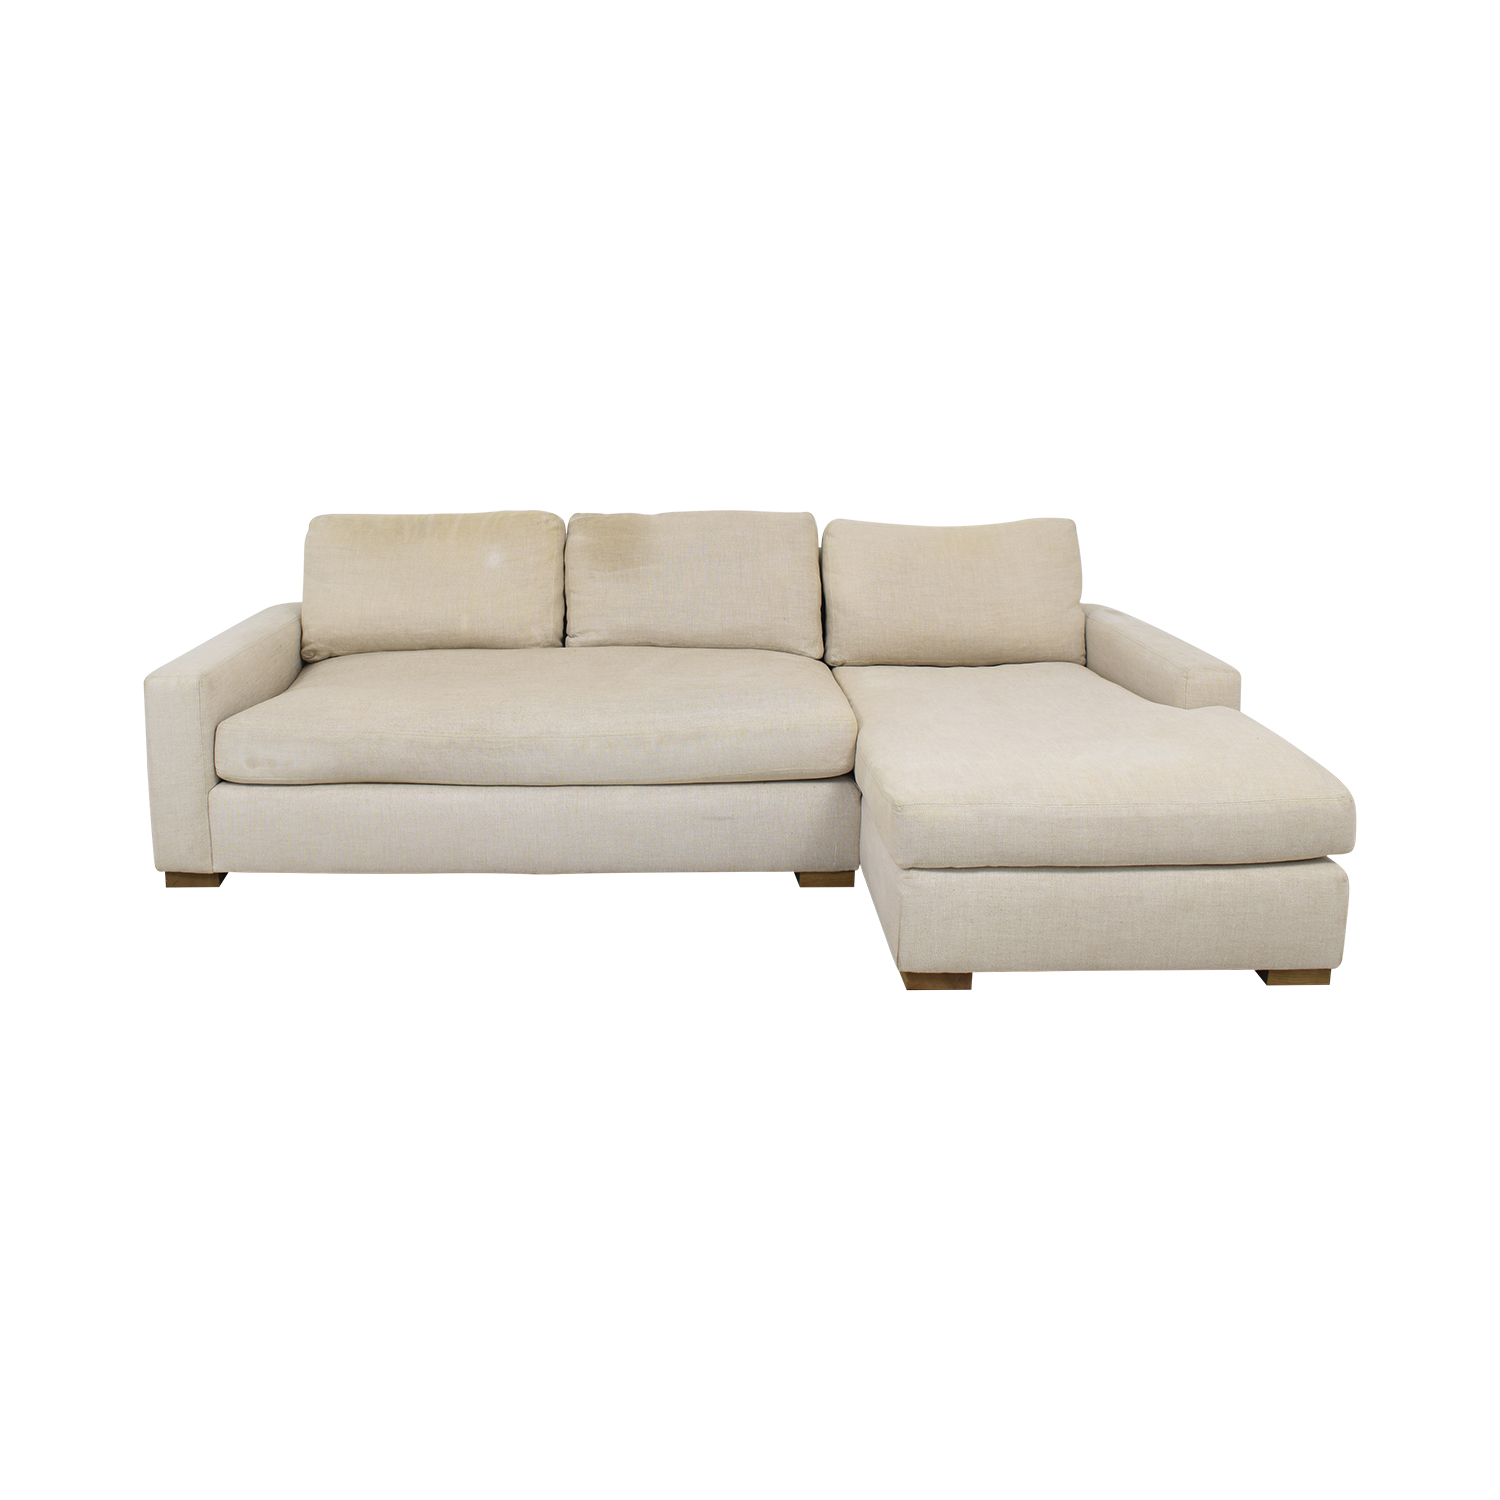 Restoration Hardware Restoration Hardware Maxwell Chaise Sectional Sofa Sectionals